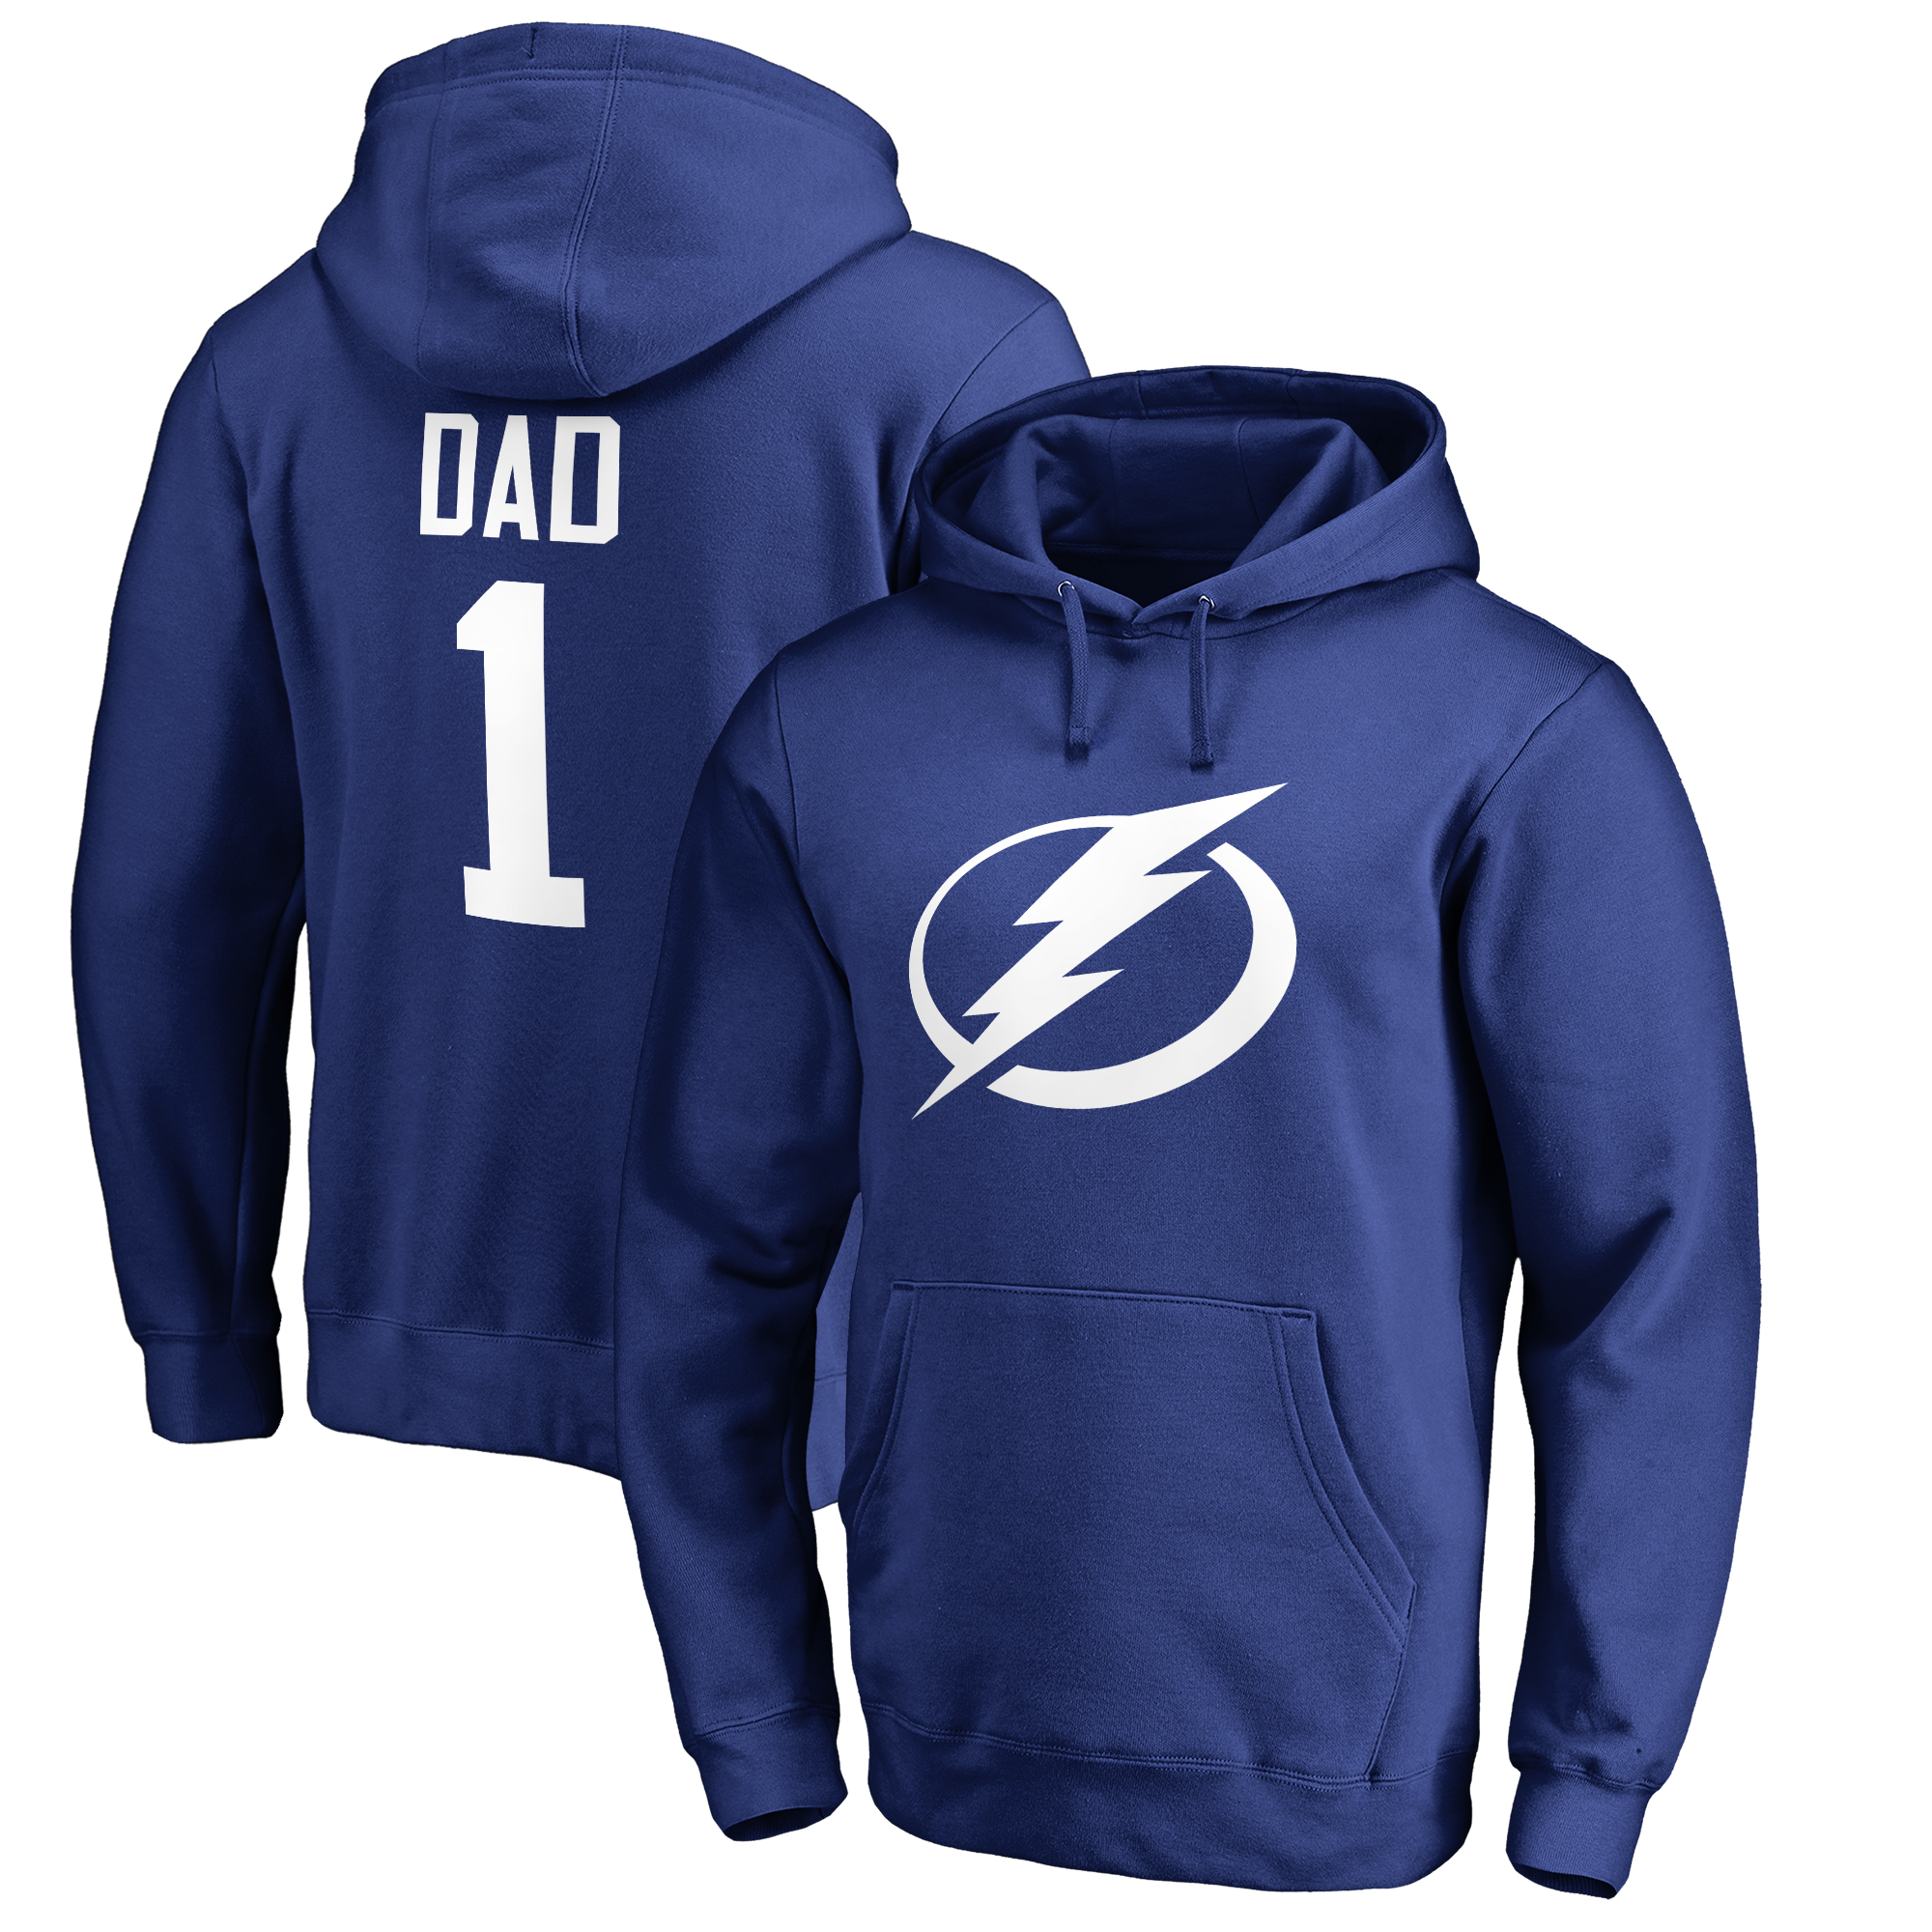 Tampa Bay Lightning Fanatics Branded Big & Tall Number One Dad Pullover Hoodie - Royal